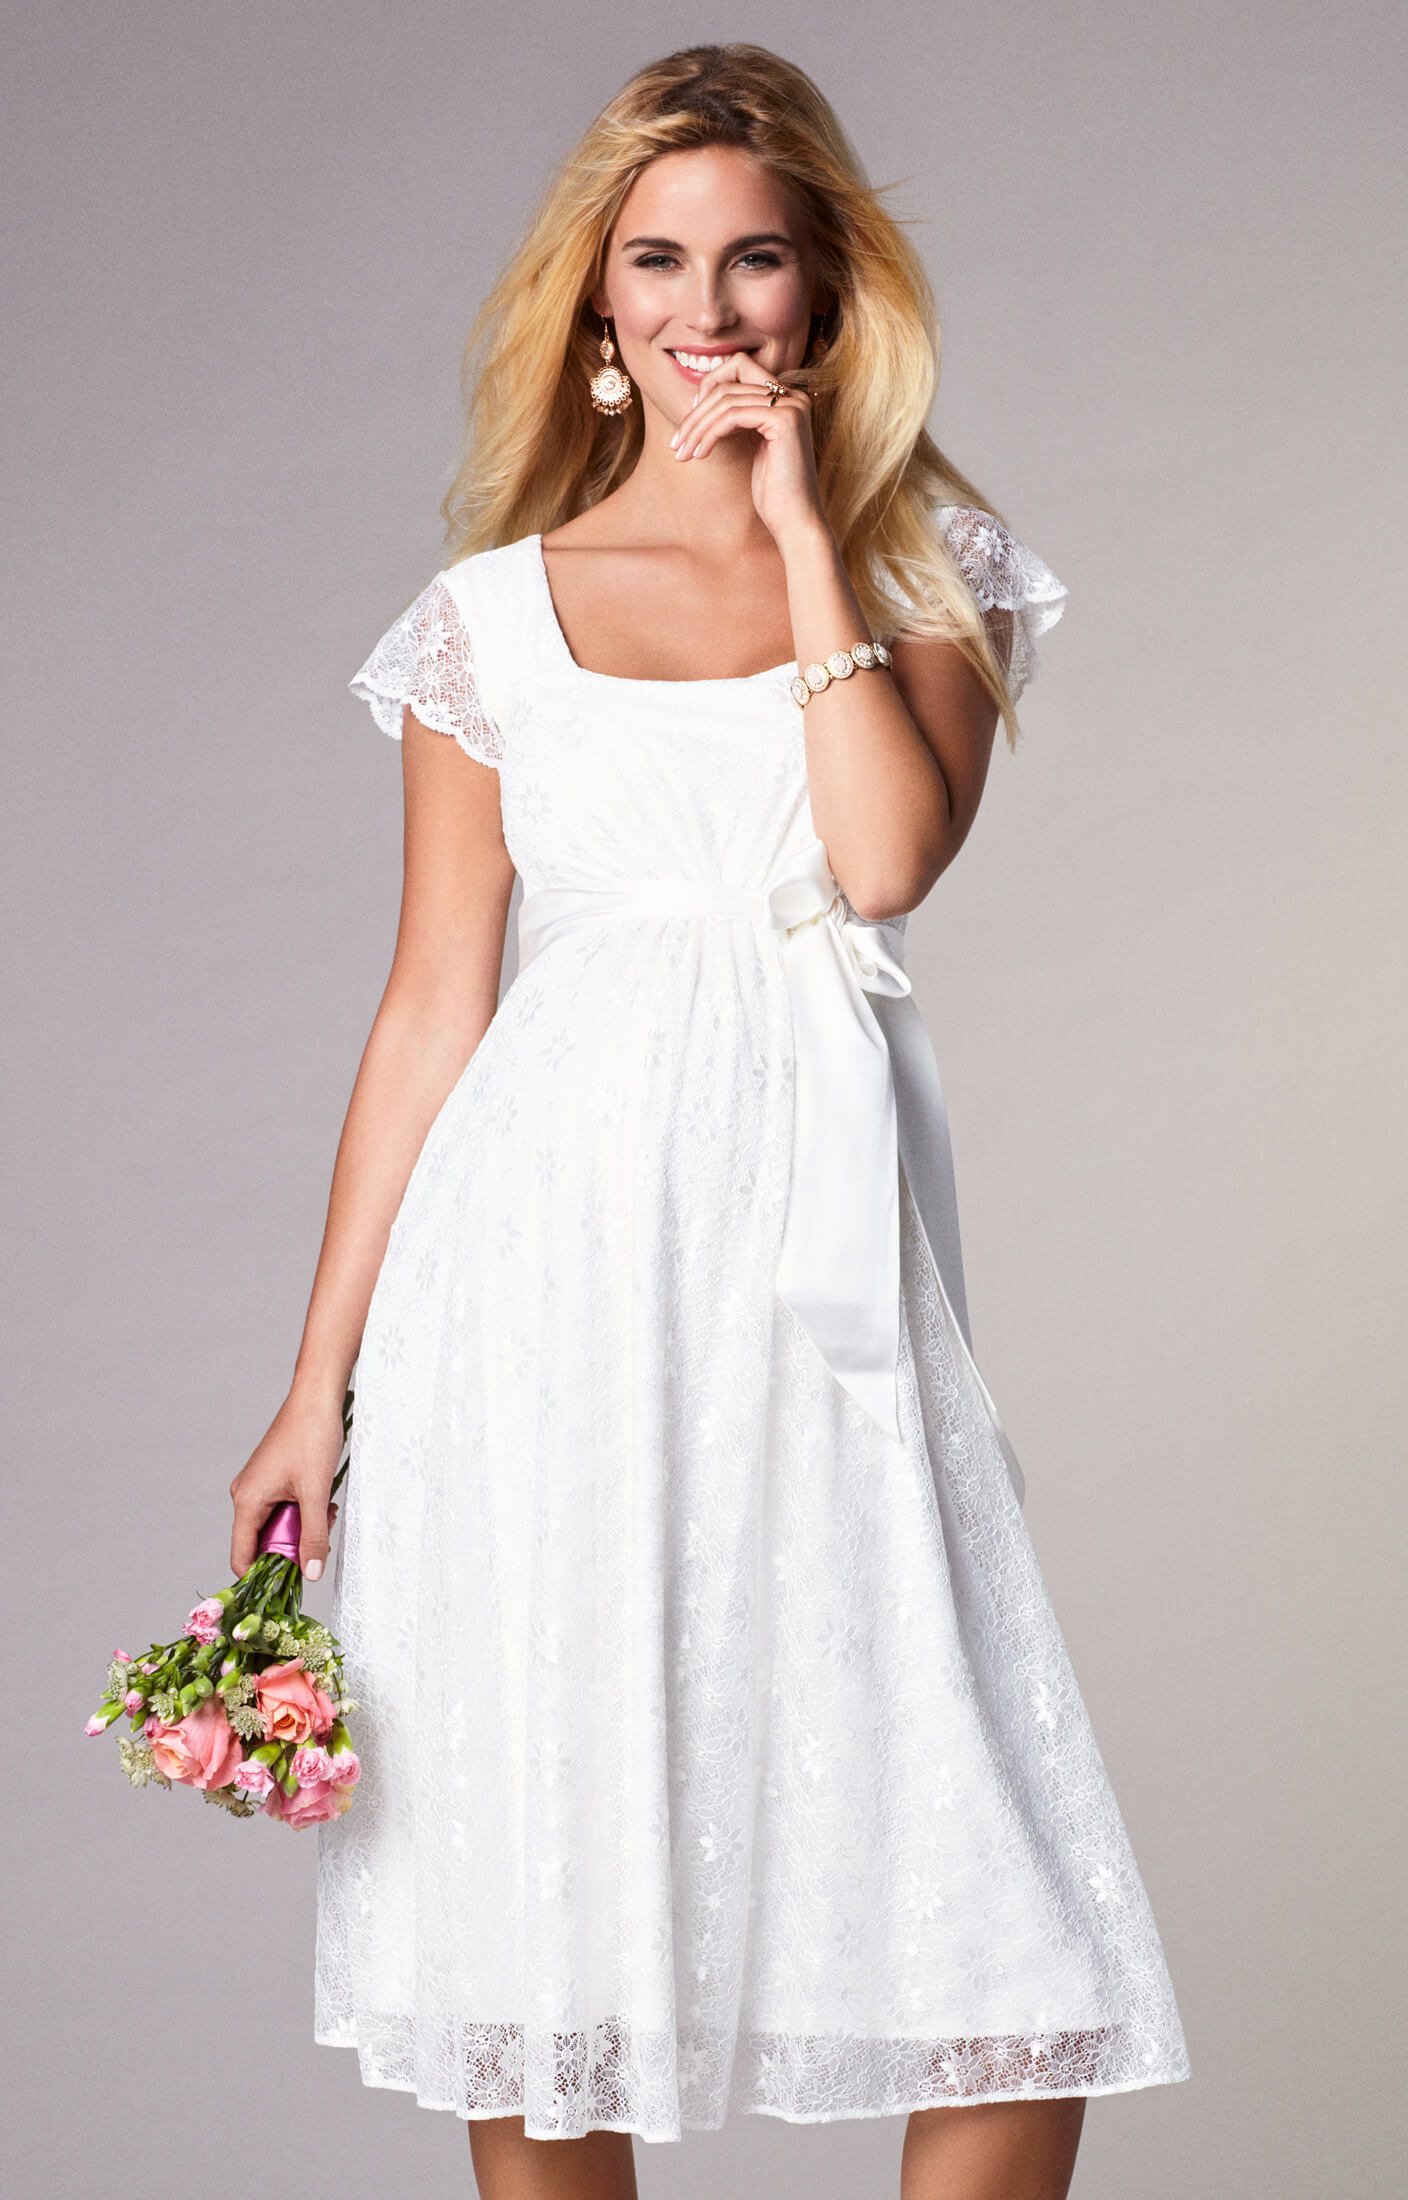 Florence maternity wedding dress short ivory maternity for Wedding guest pregnancy dresses